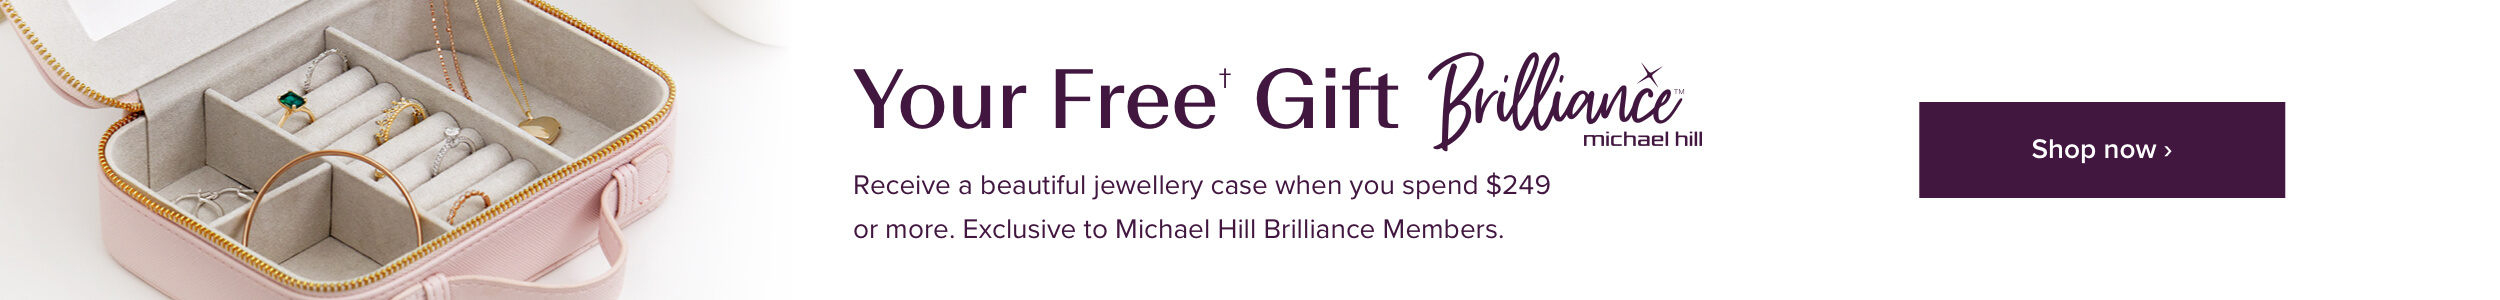 Your Free Gift with Michael Hill Brilliance. Receive a jewellery case when you spend $249 or more. Exclusive to Michael Hill Brilliance Members.